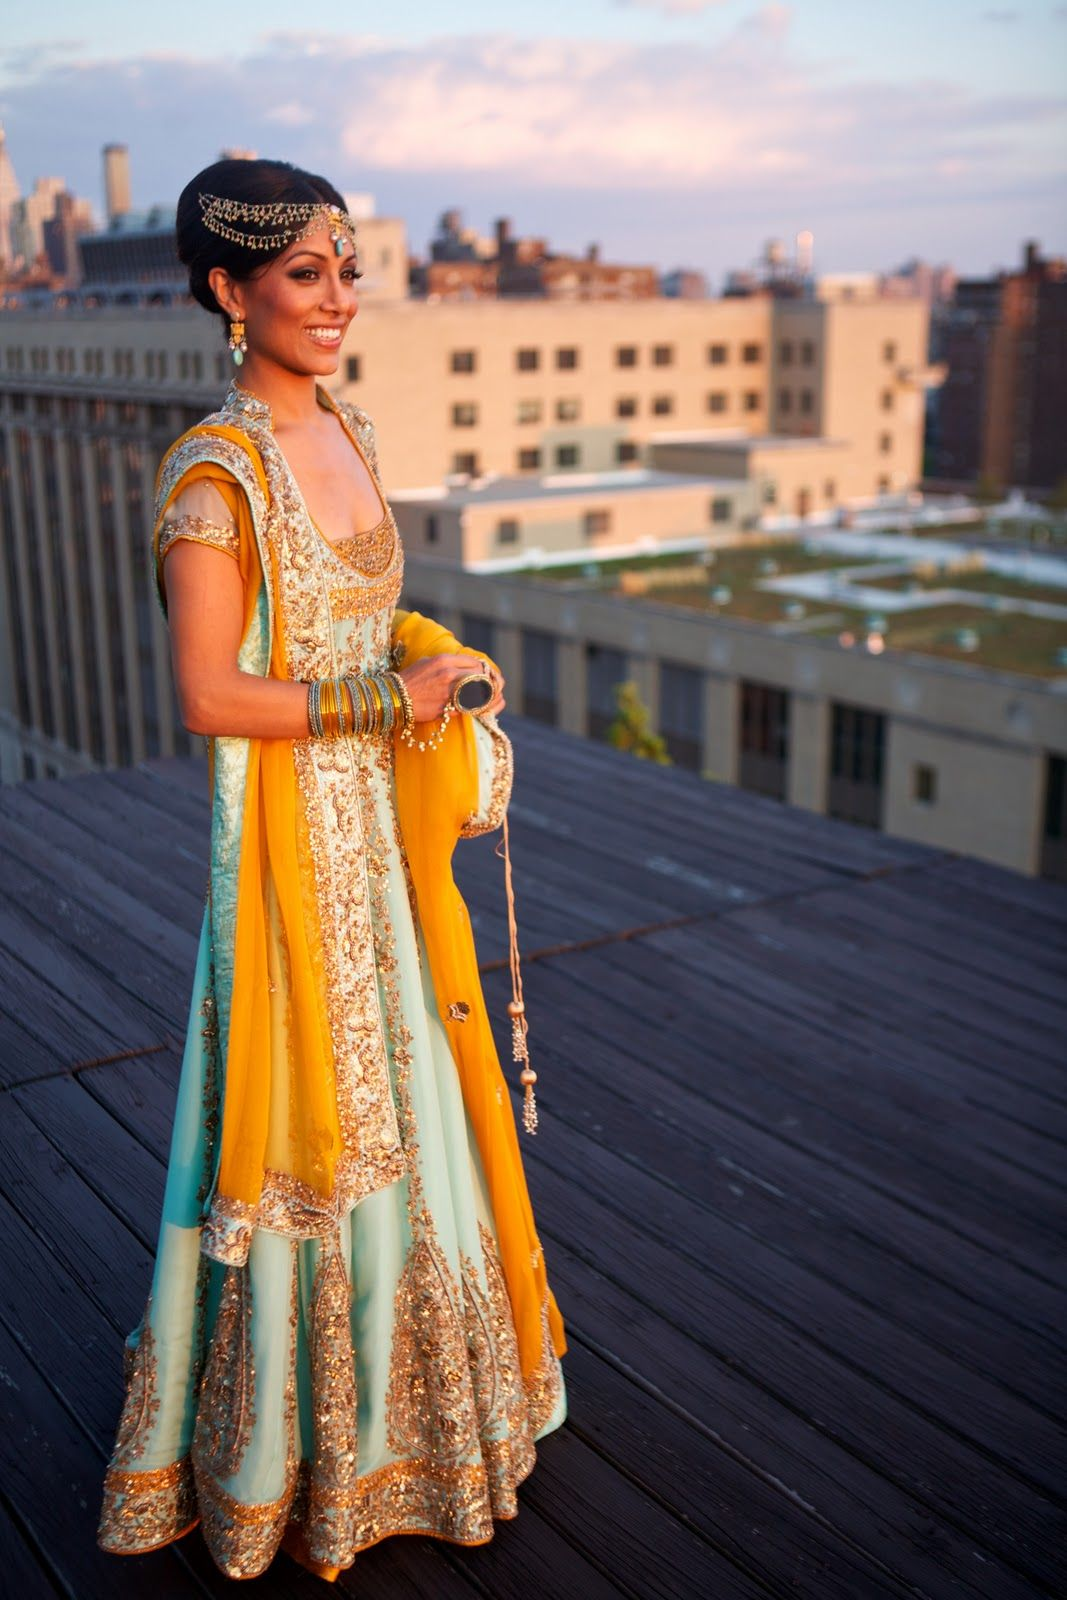 South asian wedding dresses  My favorite Indian wedding dress  Wedding uc  Pinterest  Wedding